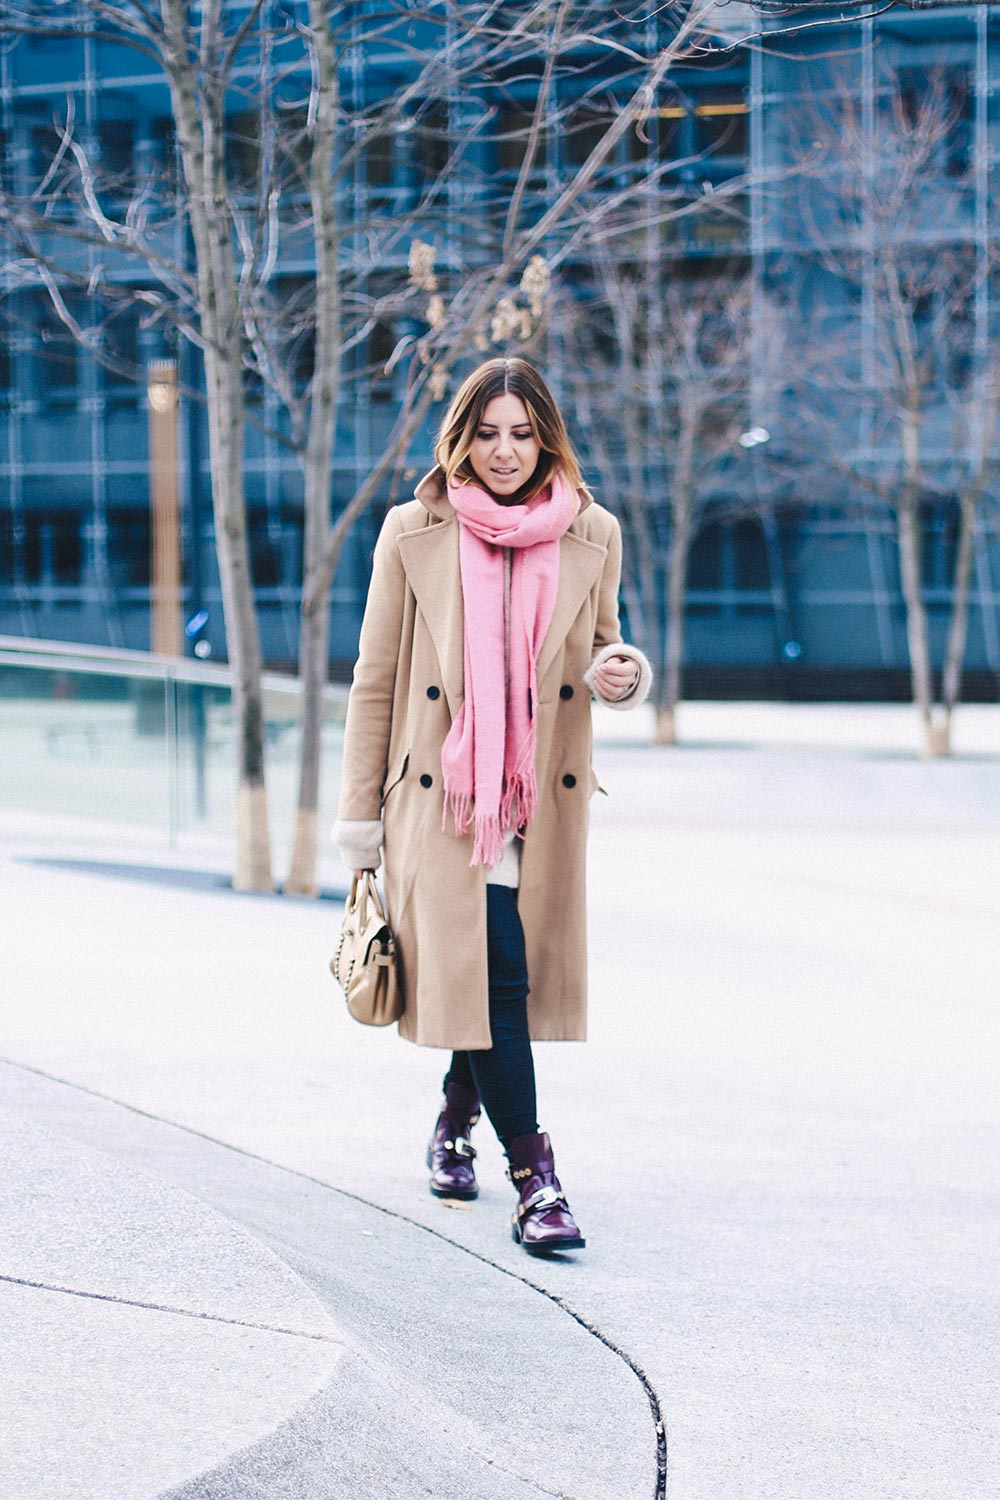 Balenciaga Cut-Out Boots, Camel Mantel und Mulberry Bayswater Tasche, Winter Outfit, Streetstyle, Innsbruck, Pink Outfit, Fashion Blog, Modeblog, Style Blog, Outfit Blog, whoismocca.com